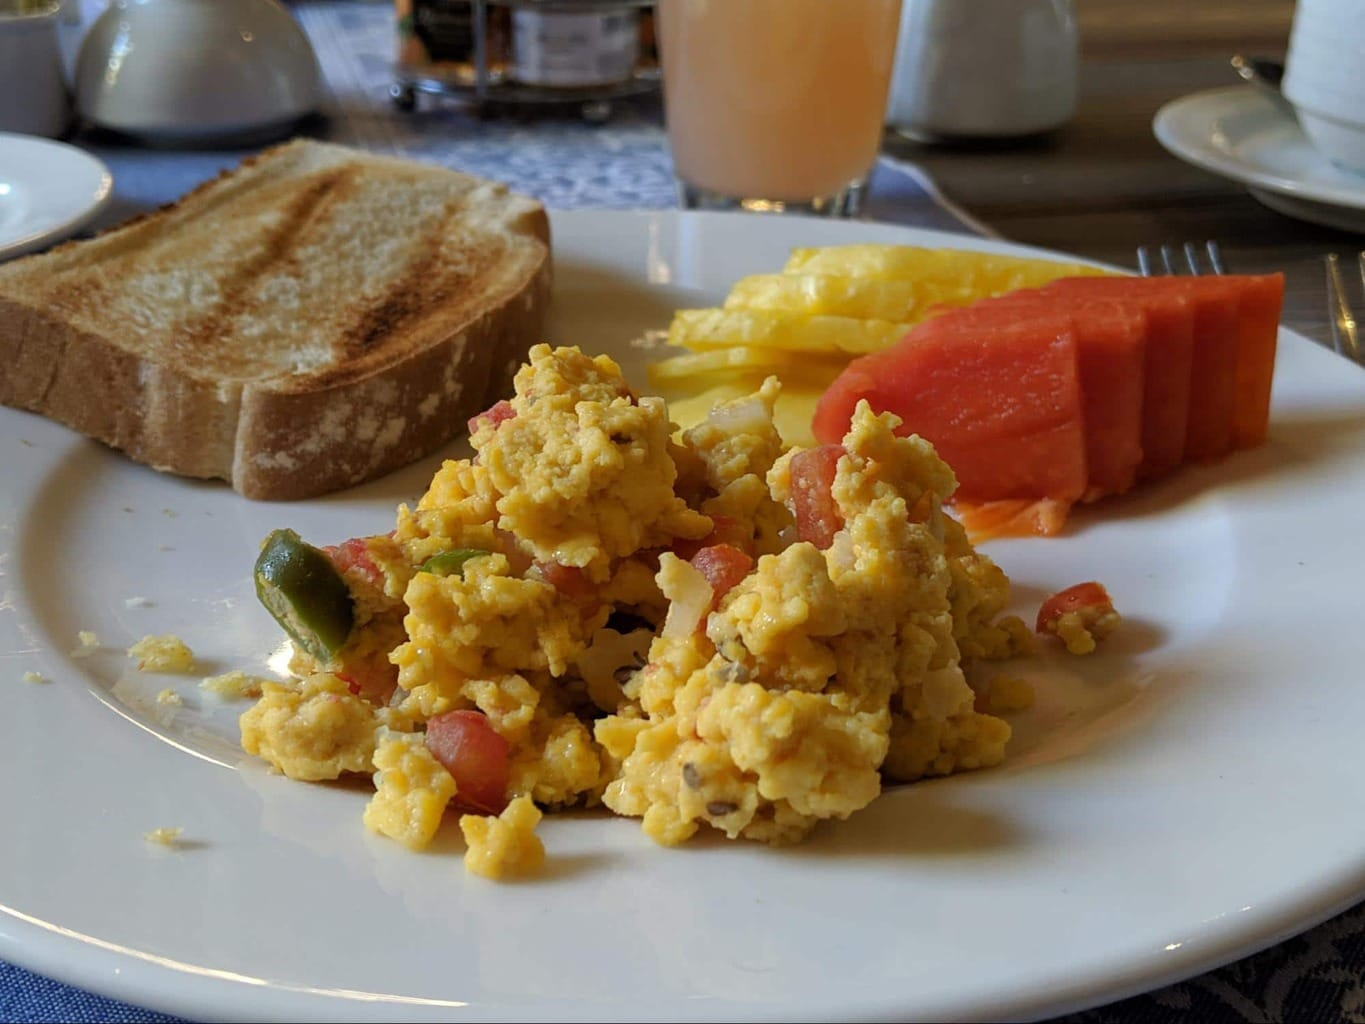 Huevos a la Mexicana, or Mexican scrambled eggs